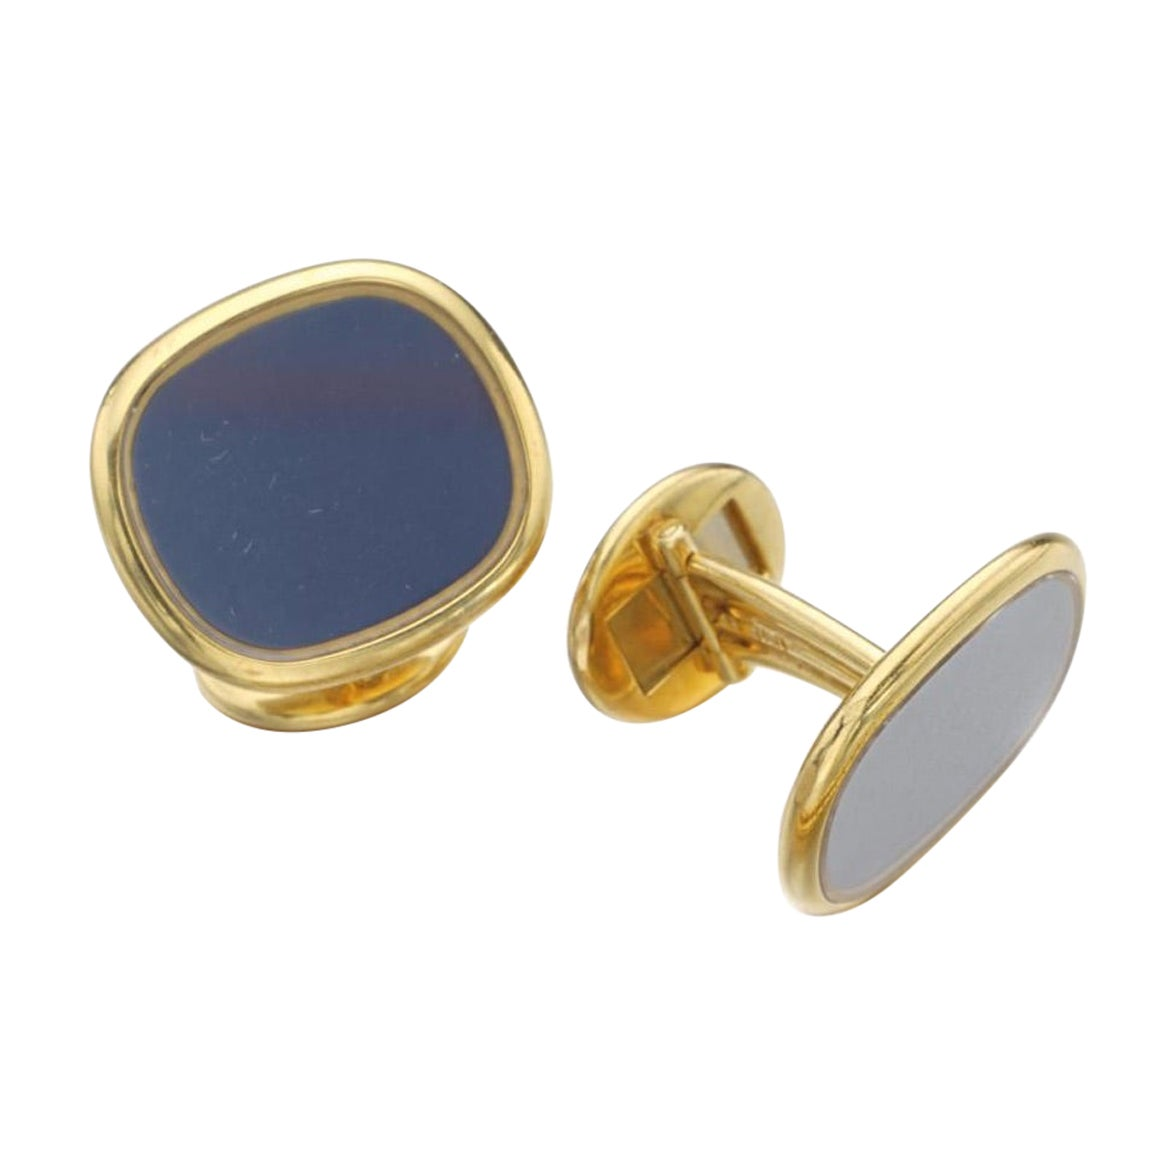 Patek Philippe Ellipse Yellow Gold 18 Karat Cufflinks, 1970s